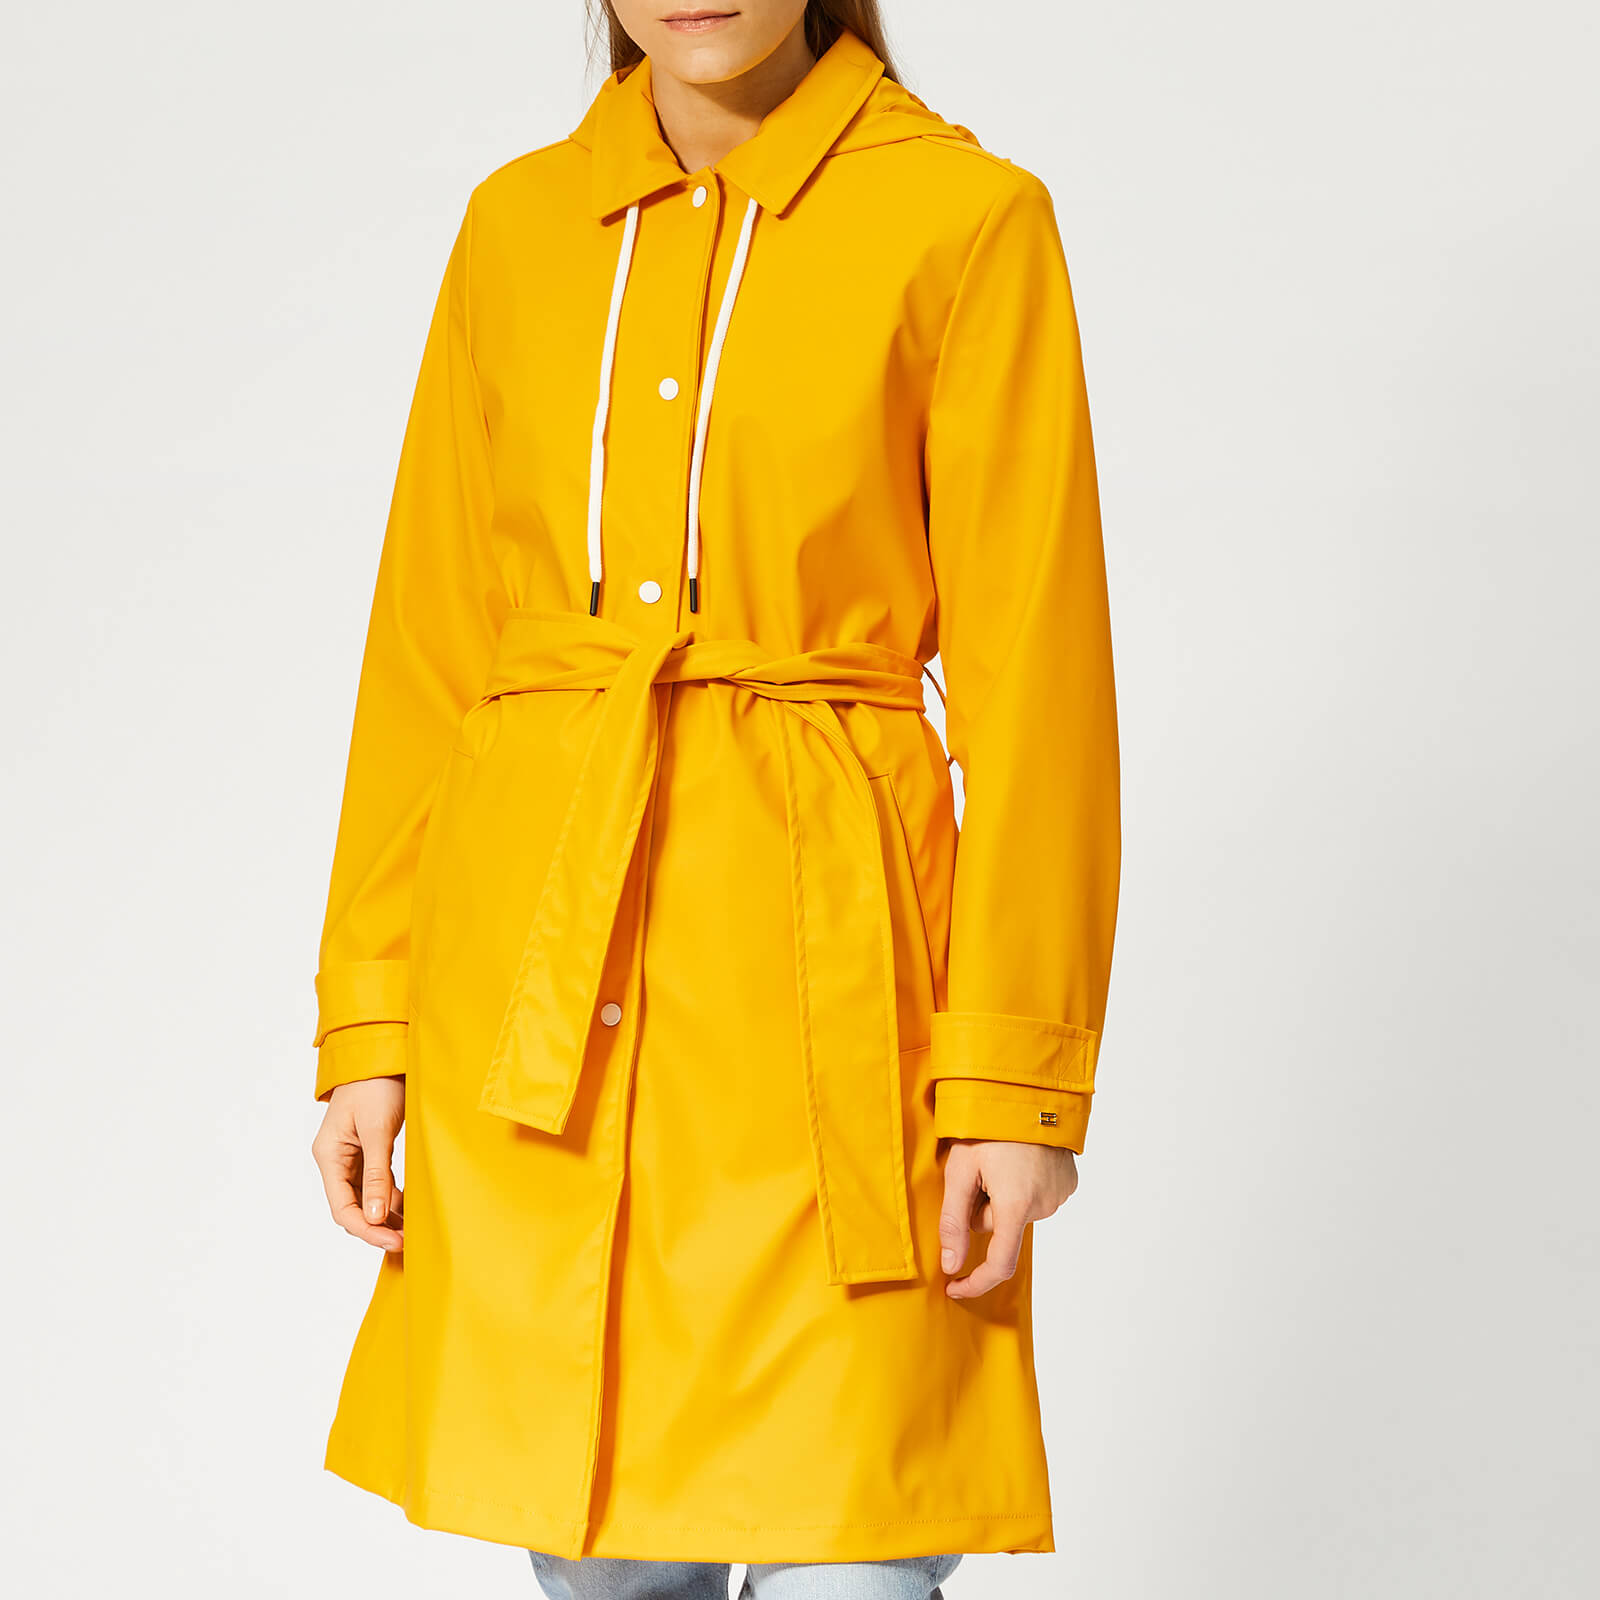 official sale choose official new concept Tommy Hilfiger Women's Britt Hooded Trench Coat - Yellow